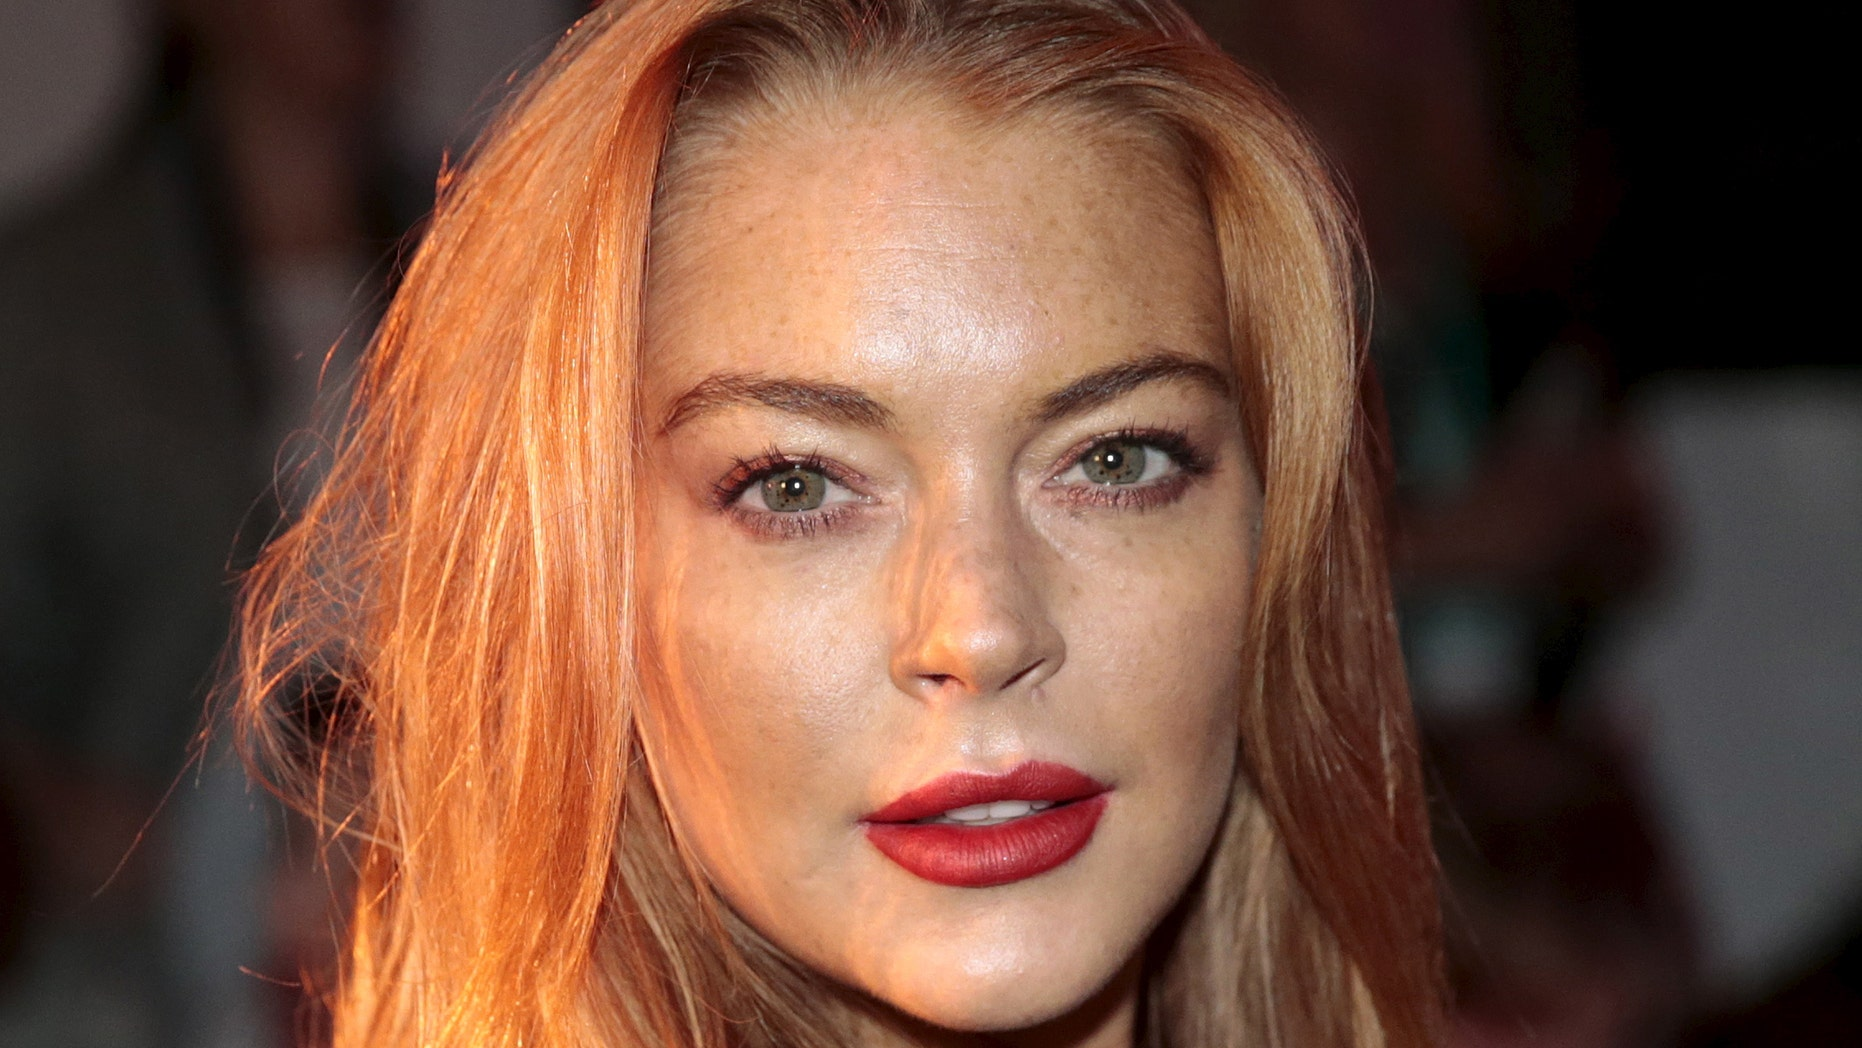 September 19, 2015.  Lindsay Lohan arrives for the presentation of the  Gareth Pugh Spring/Summer 2016 collection during London Fashion Week in London, Britain.